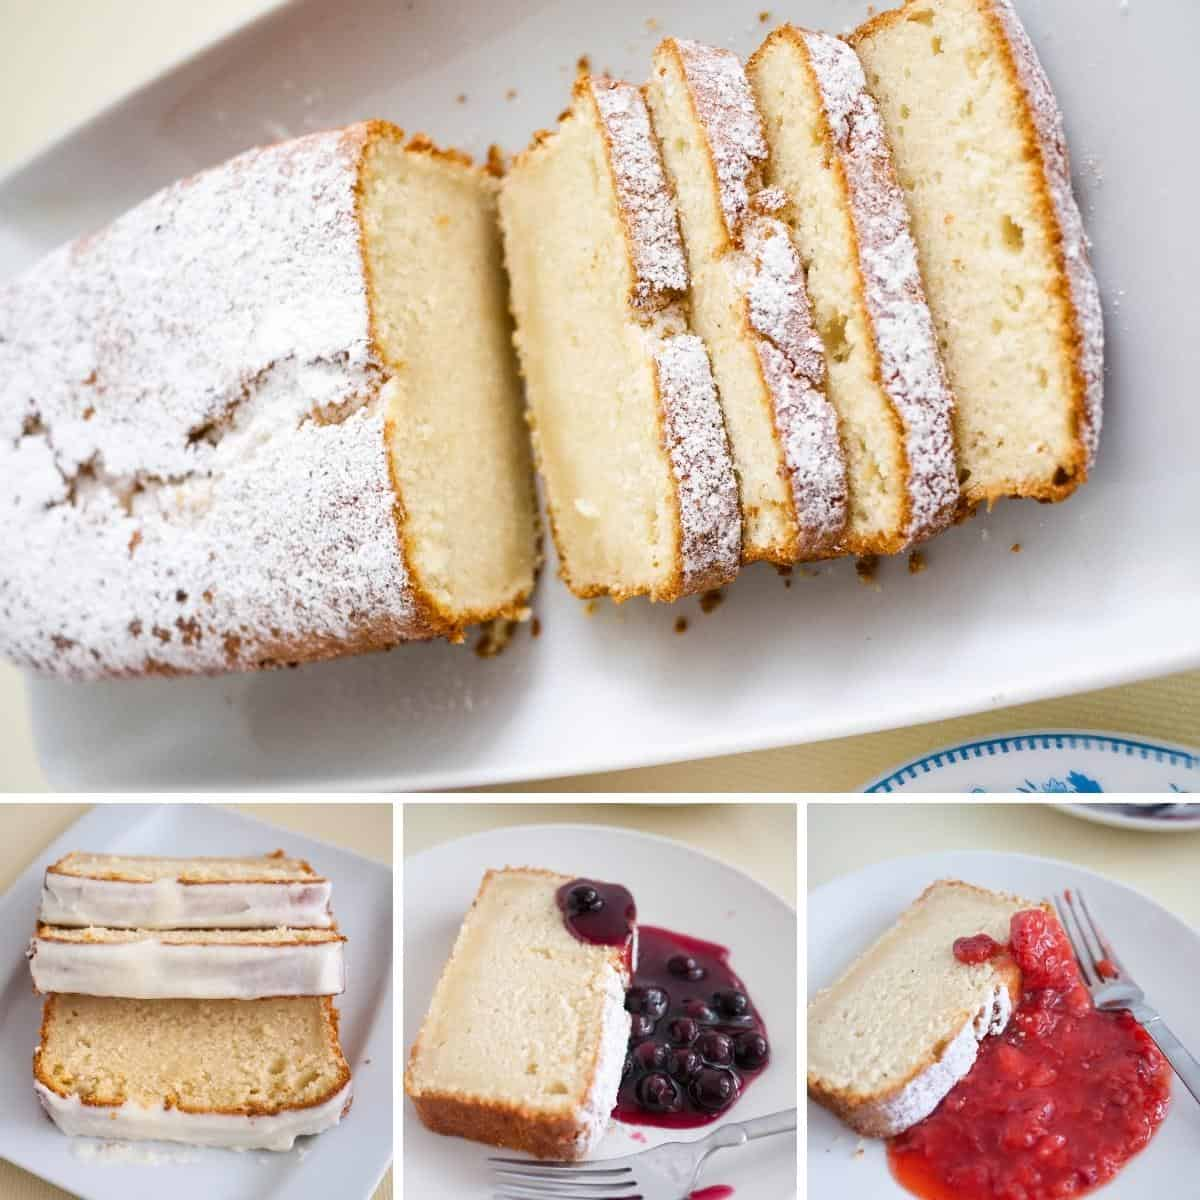 Serving suggestions for vanilla pound cake.